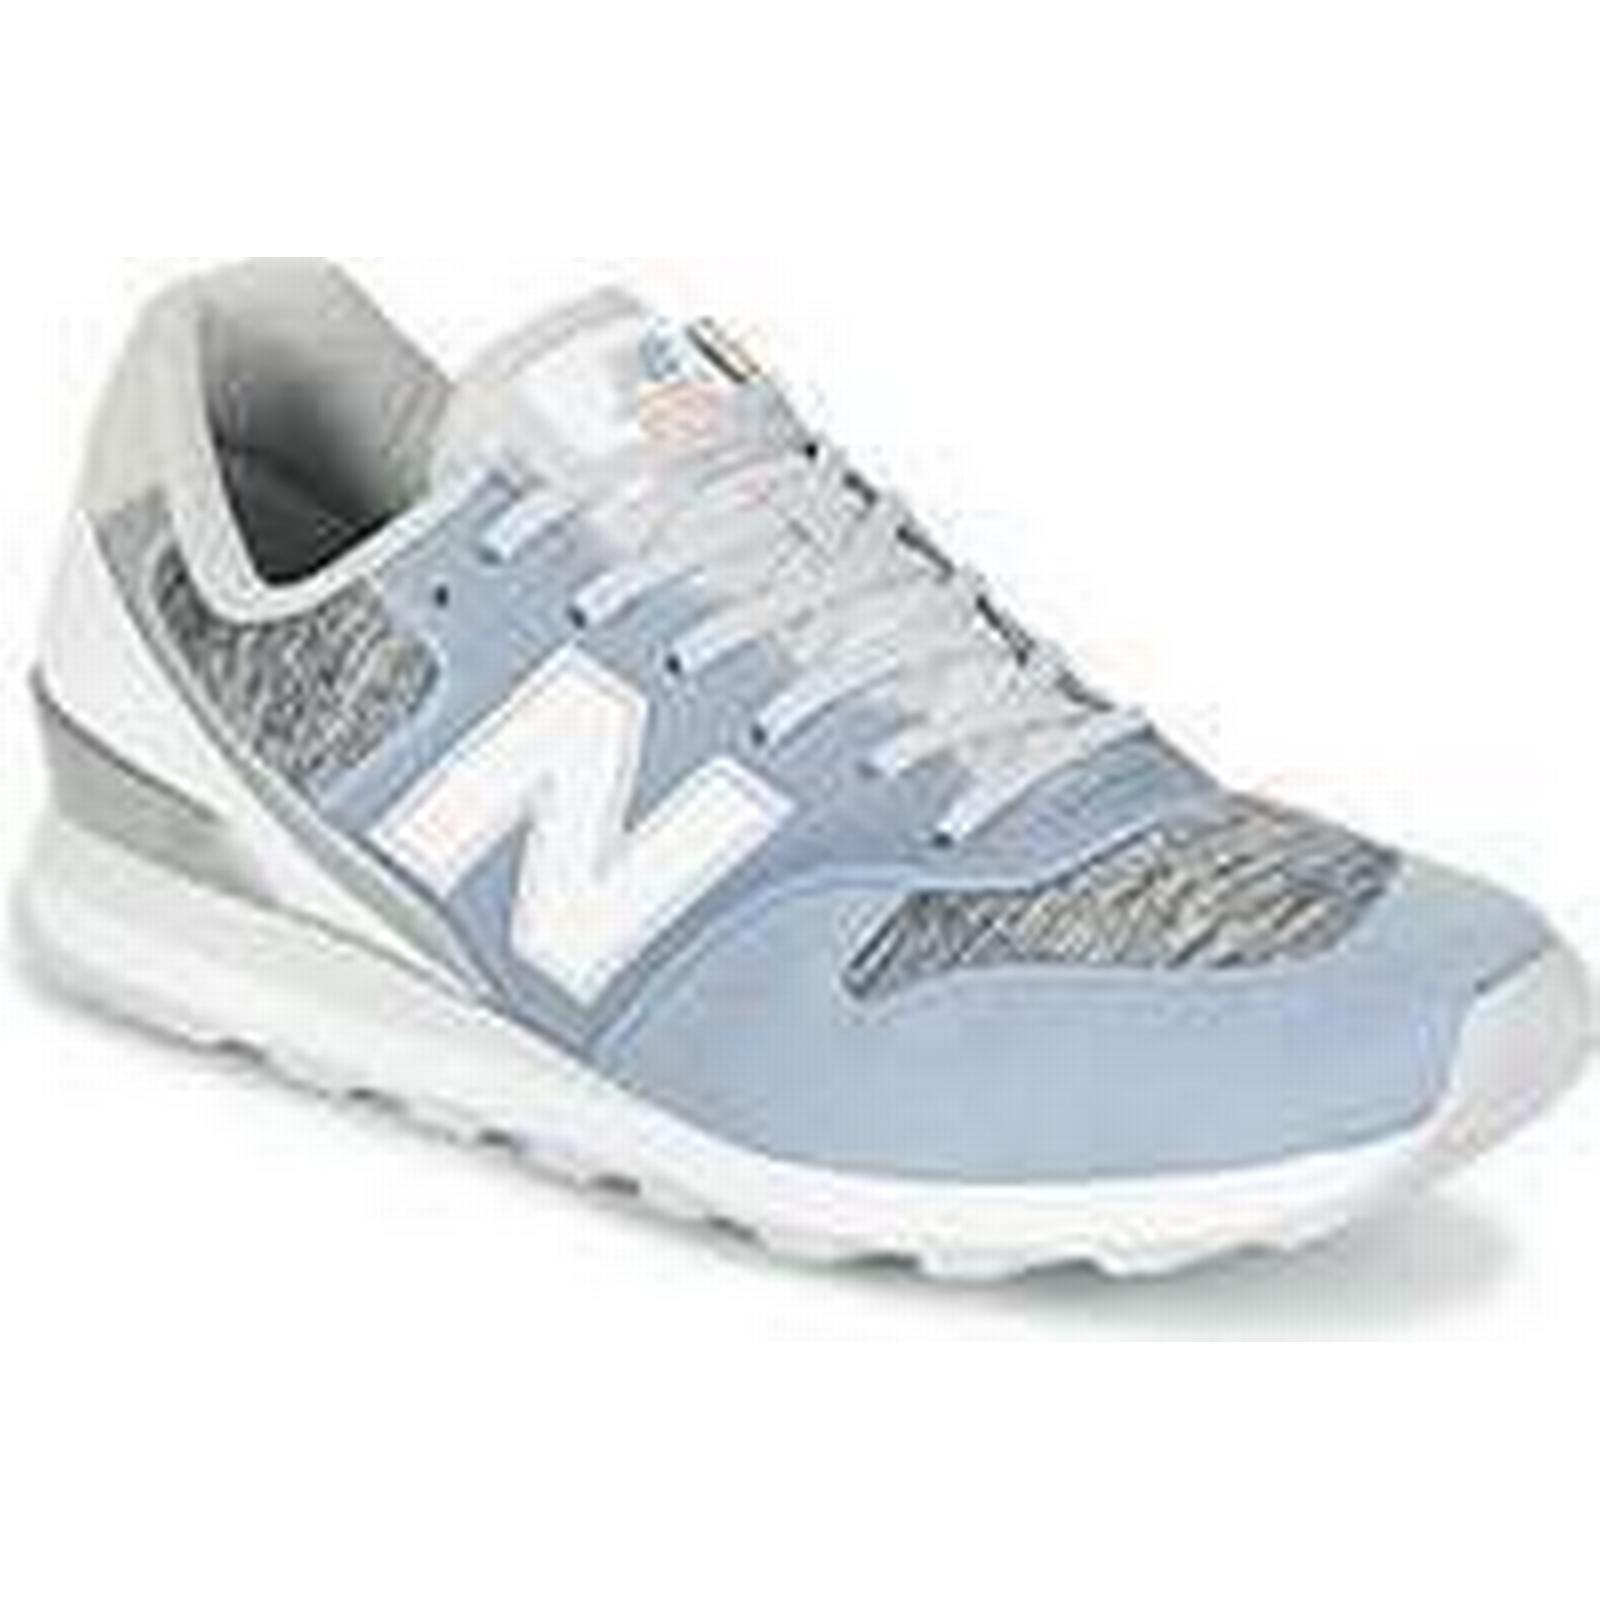 Spartoo.co.uk New Shoes Balance WR996 women's Shoes New (Trainers) in Blue c463ab